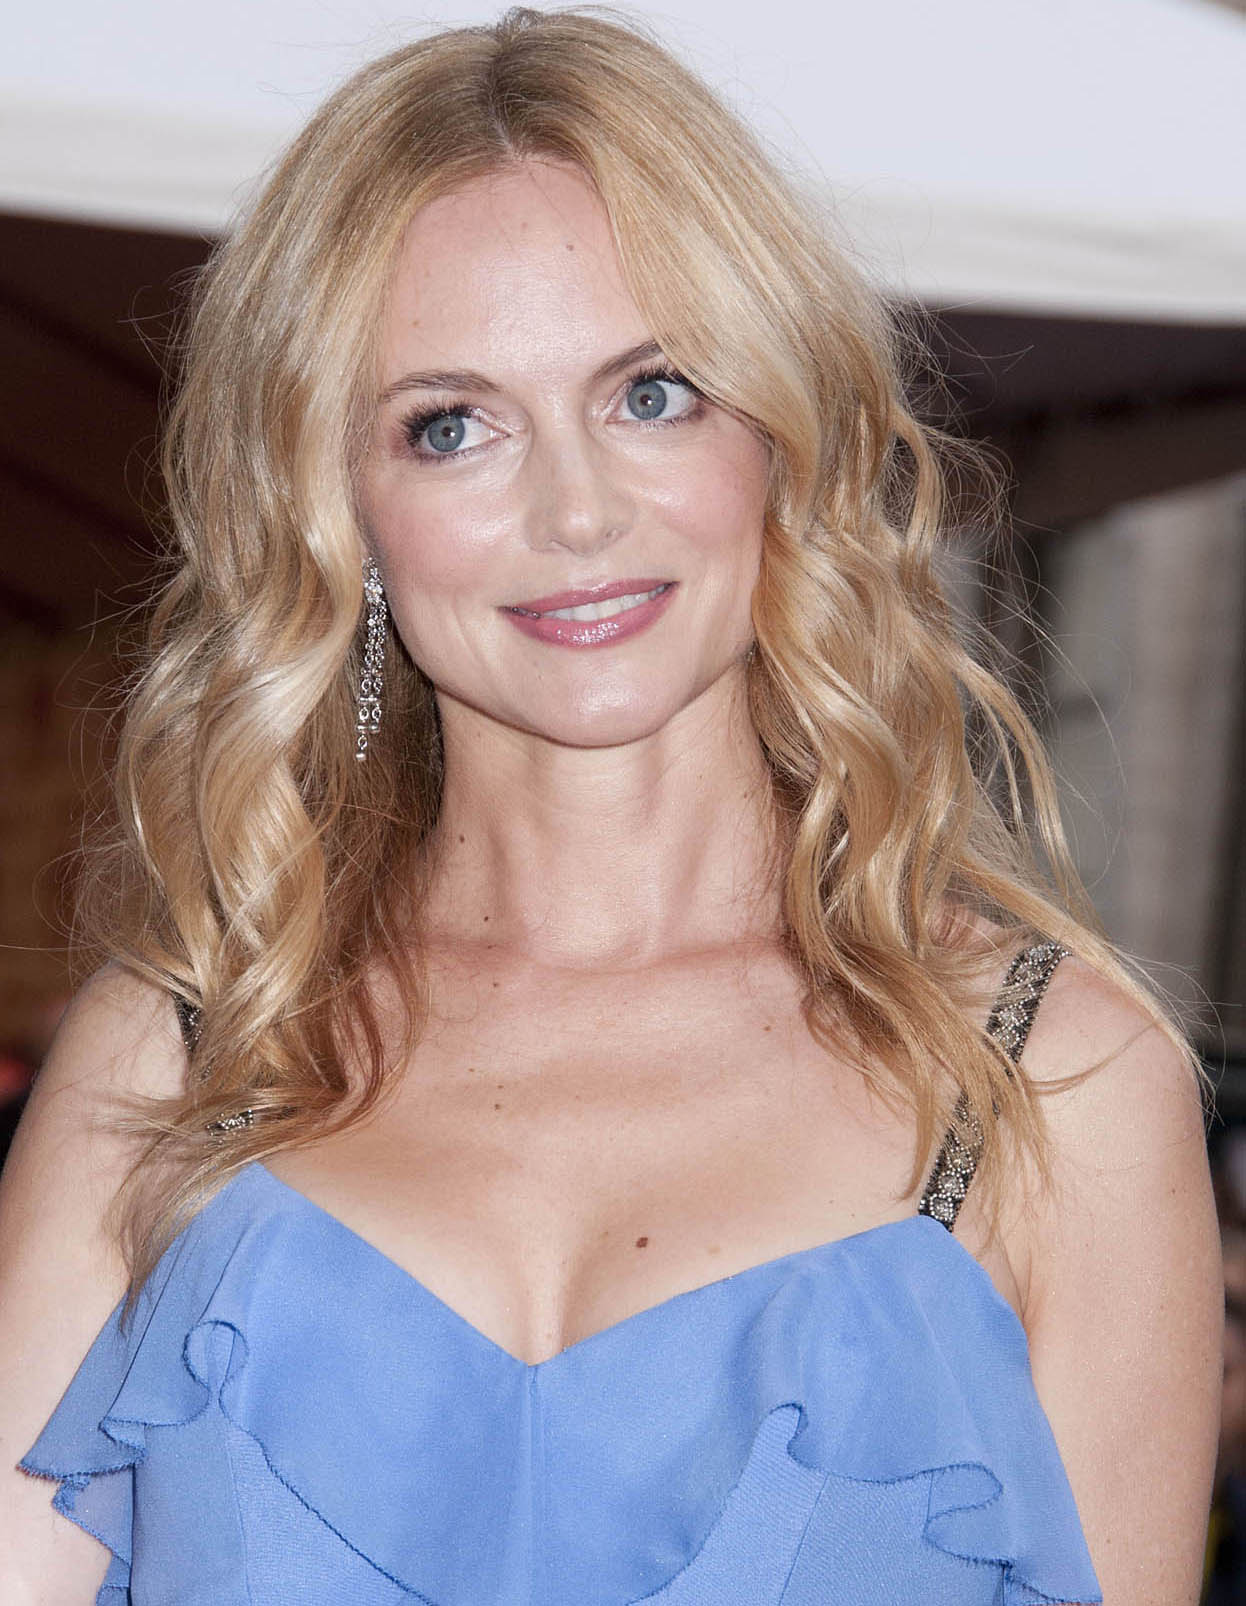 Heather Graham Has Still Got It. Added: 2012-06-05 21:11:32 (GMT+1)